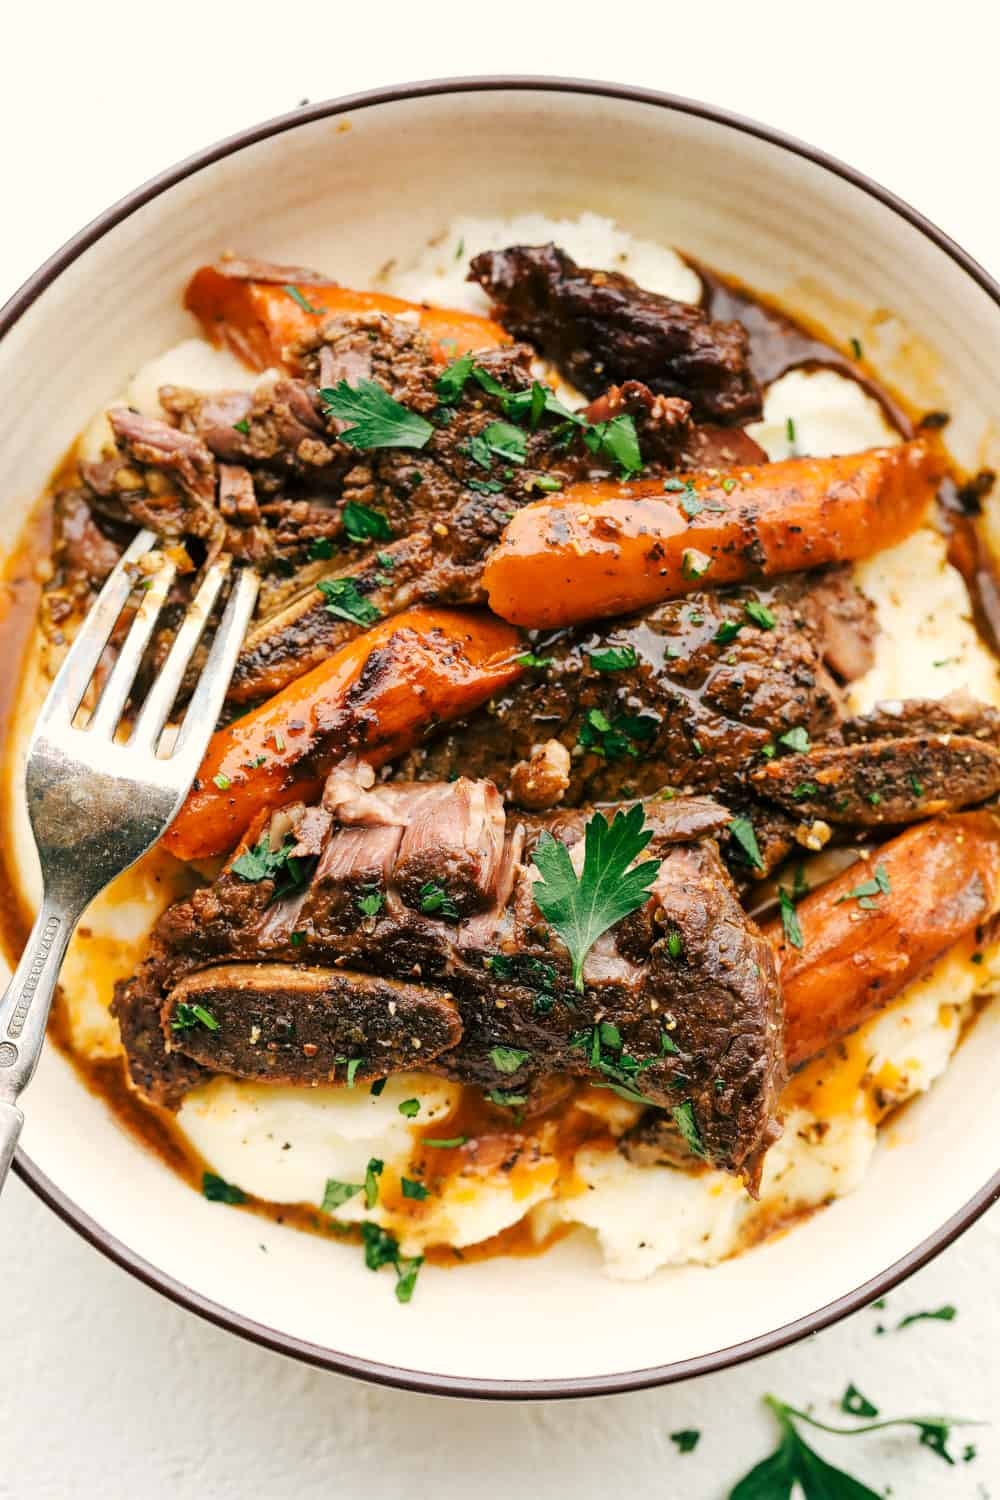 Fork Tender Slow Cooker Short Ribs in a bowl with mashed potatoes and carrots.